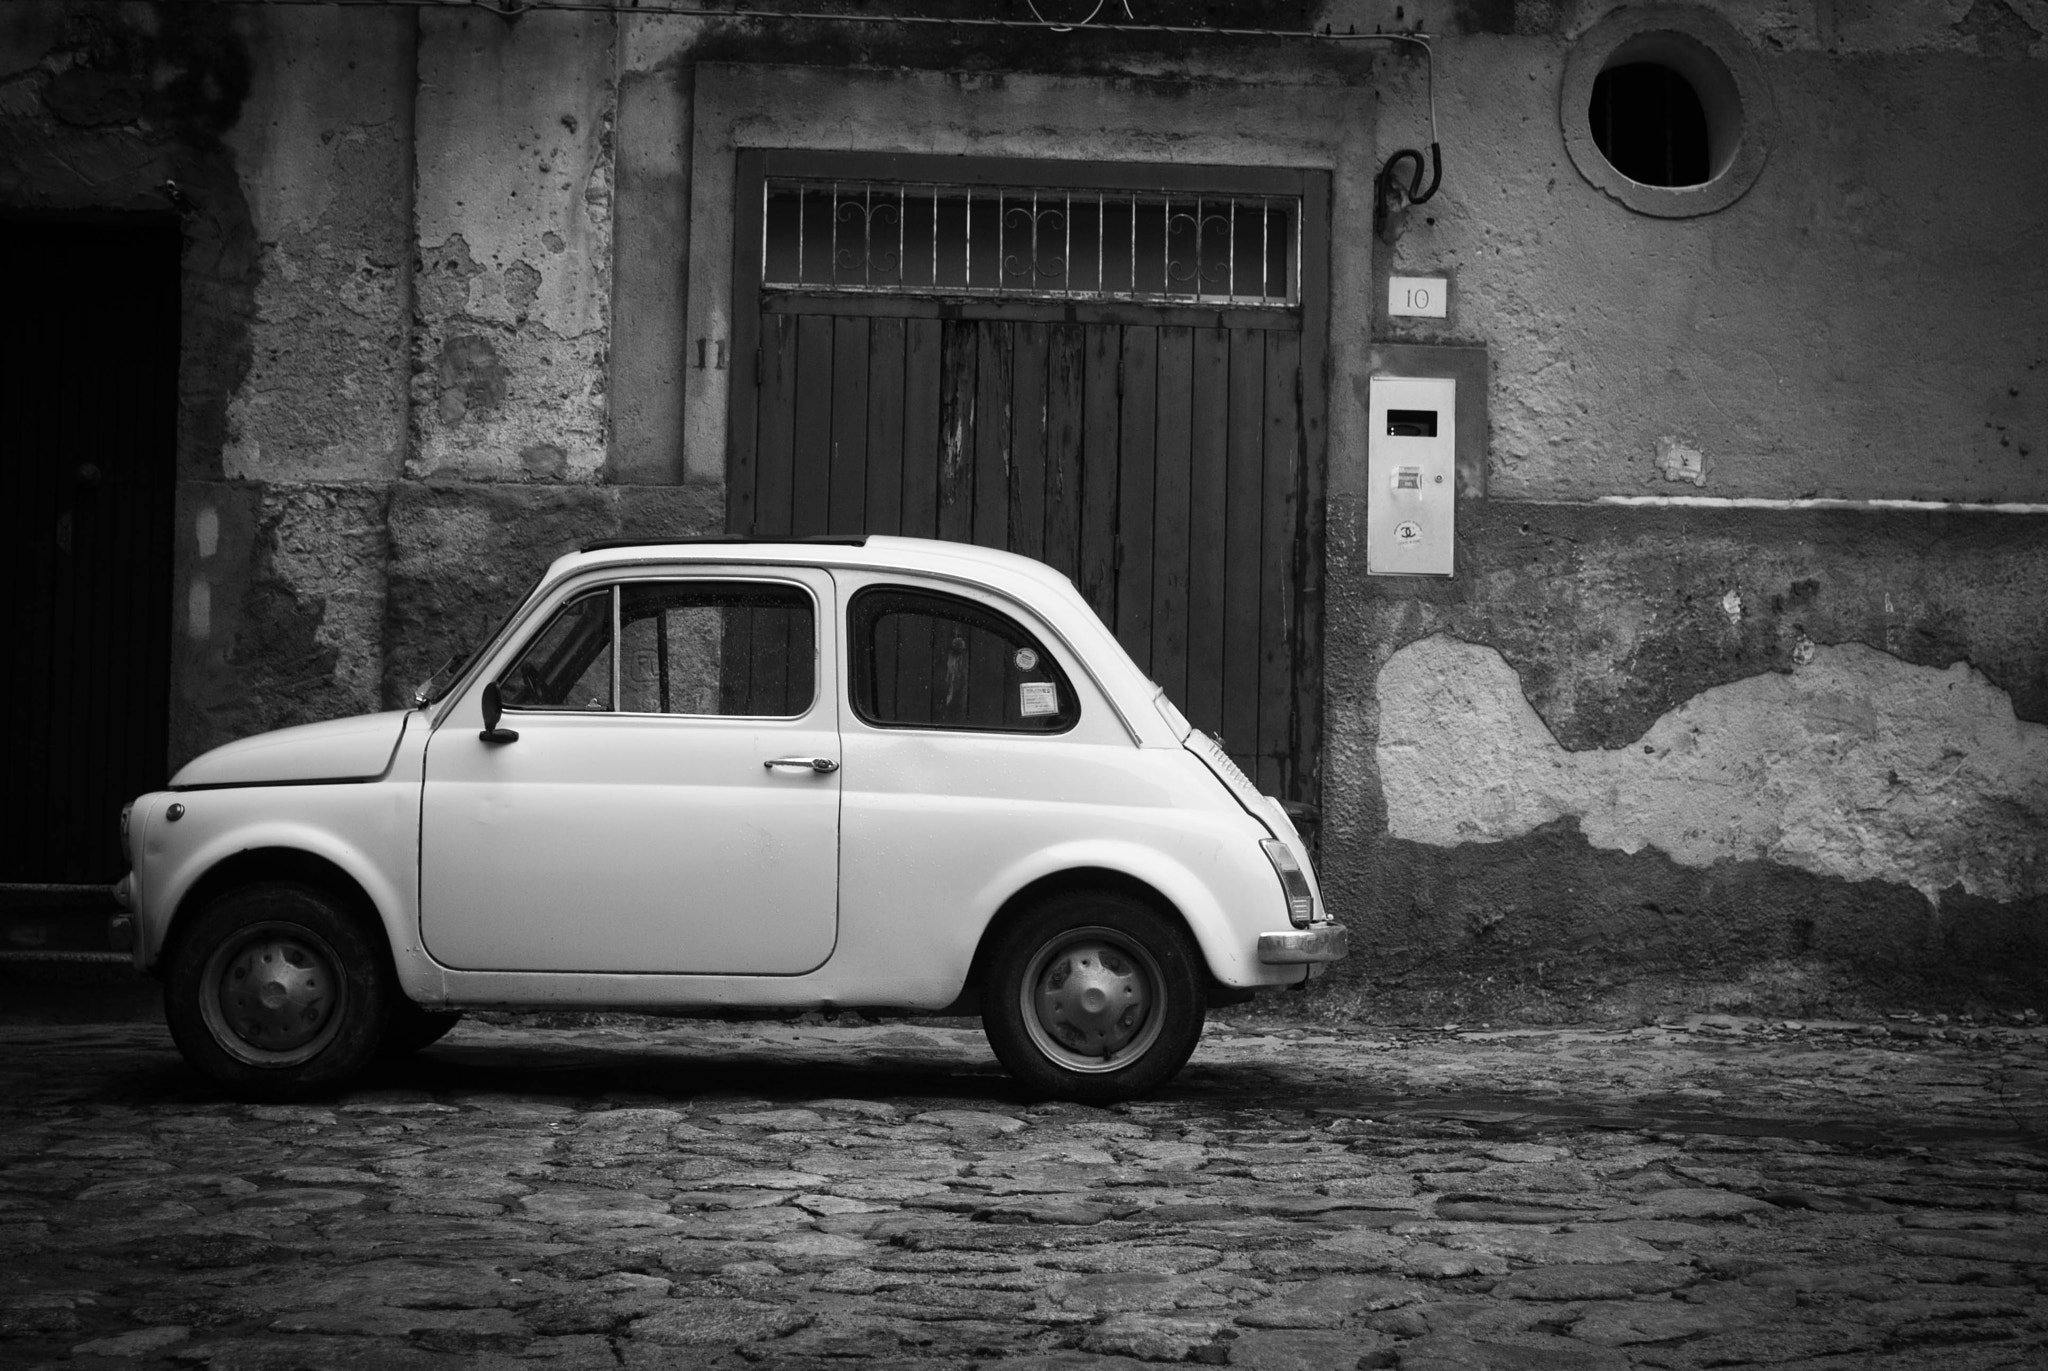 Photograph Cinquecento by La Grande Garza on 500px